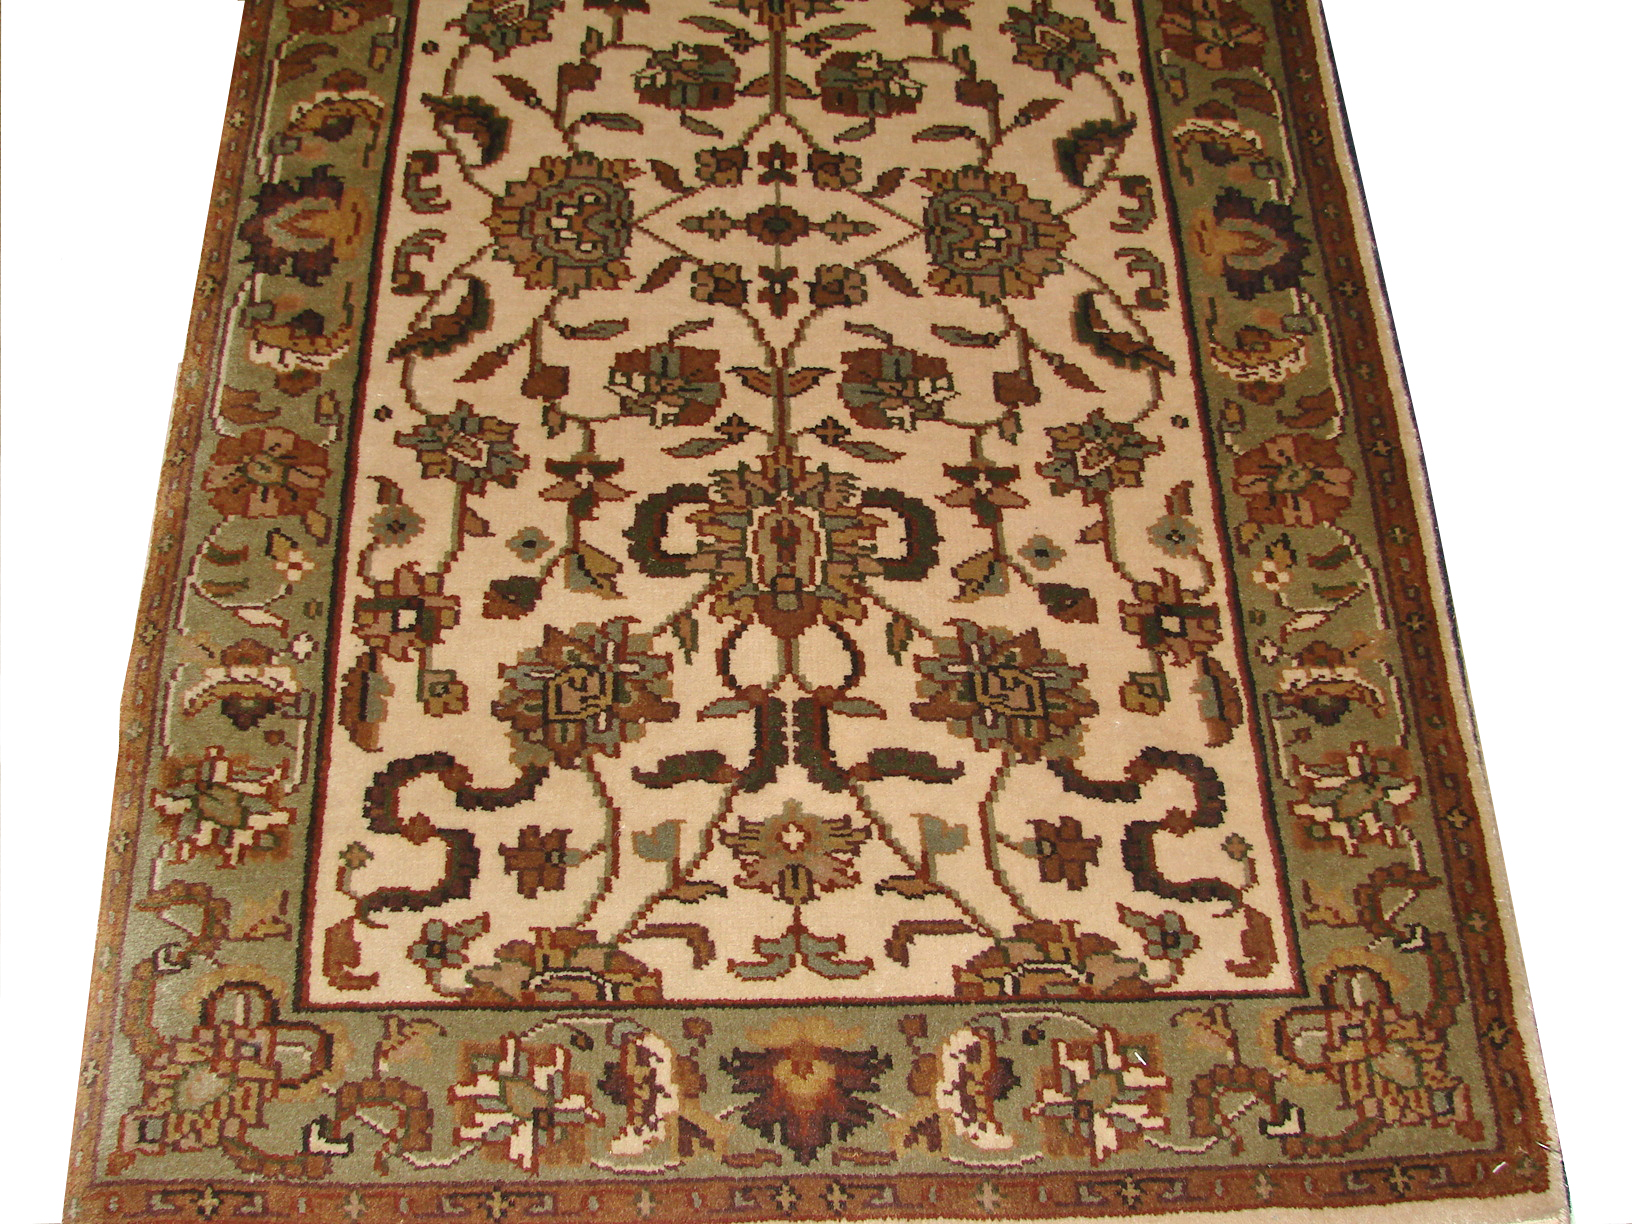 3x5 Traditional Hand Knotted Wool Area Rug - MR0040